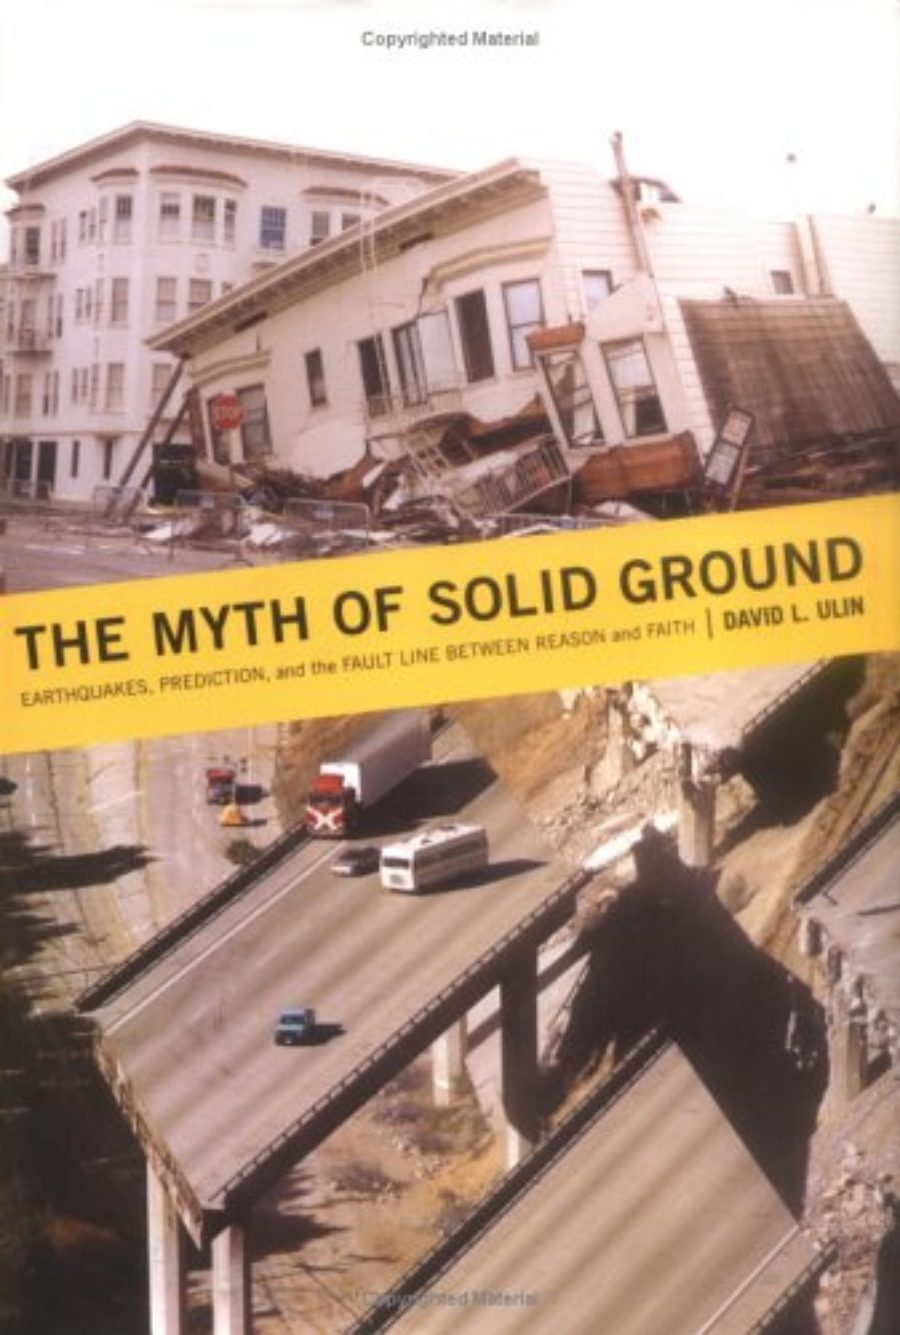 Cover of The Myth of Solid Ground: Earthquakes, Prediction, and the Fault Line Between Reason and Faith